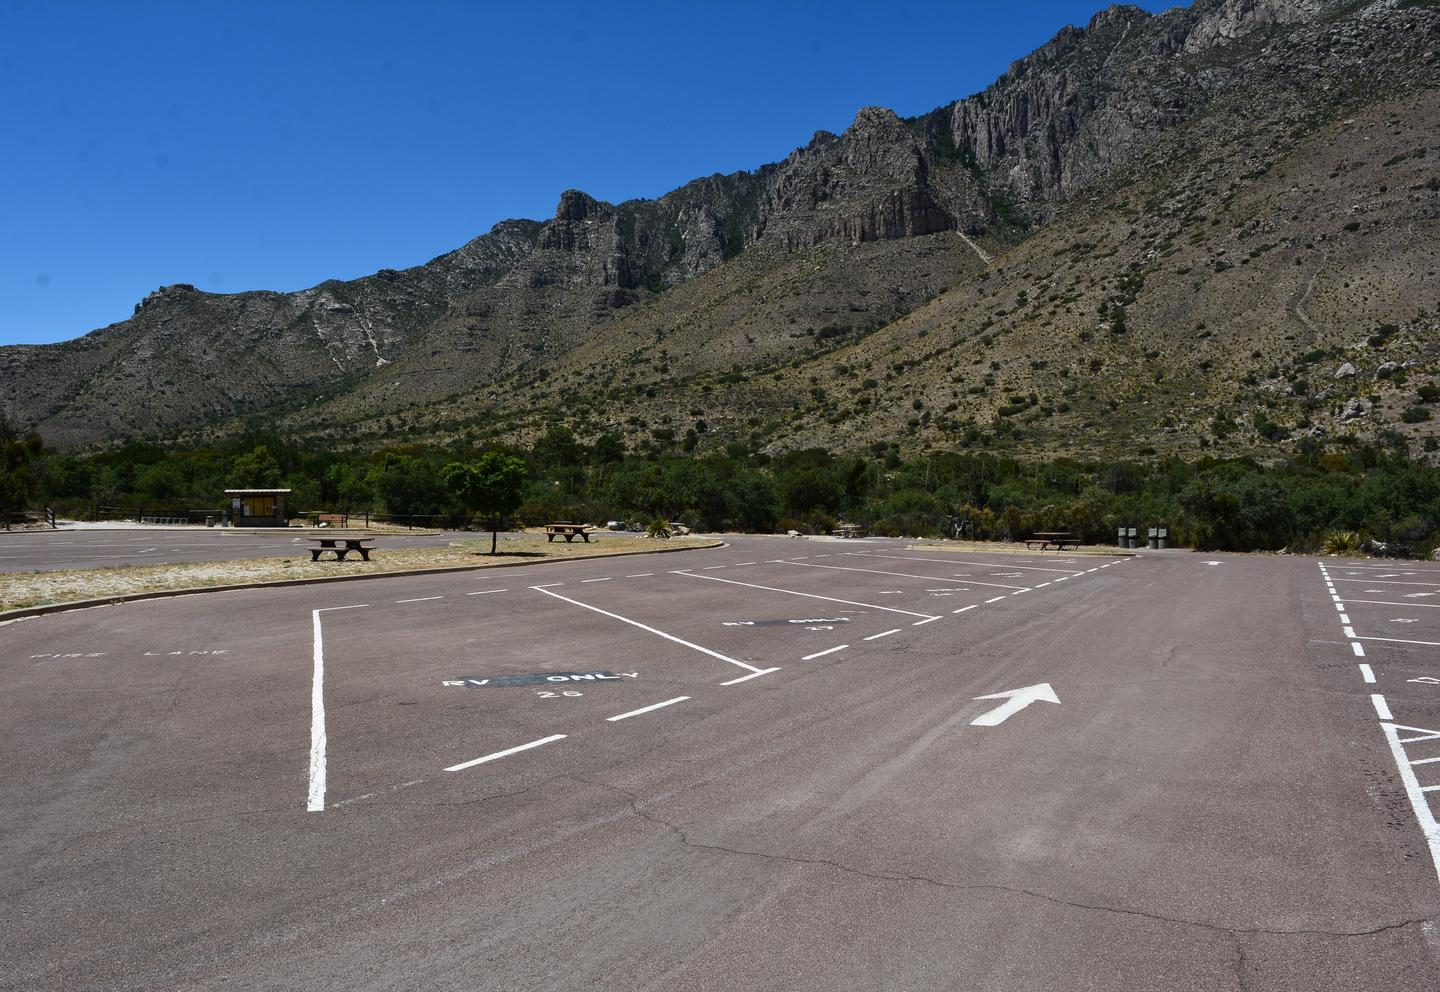 A view of RV campground parking area with sites 21-30 shown.  Site 28 is located along the left side of travel lane.  Mountain views in the background.A view of RV campground parking area with sites 21-30 shown.  Site 28 is located along the left side of travel lane.